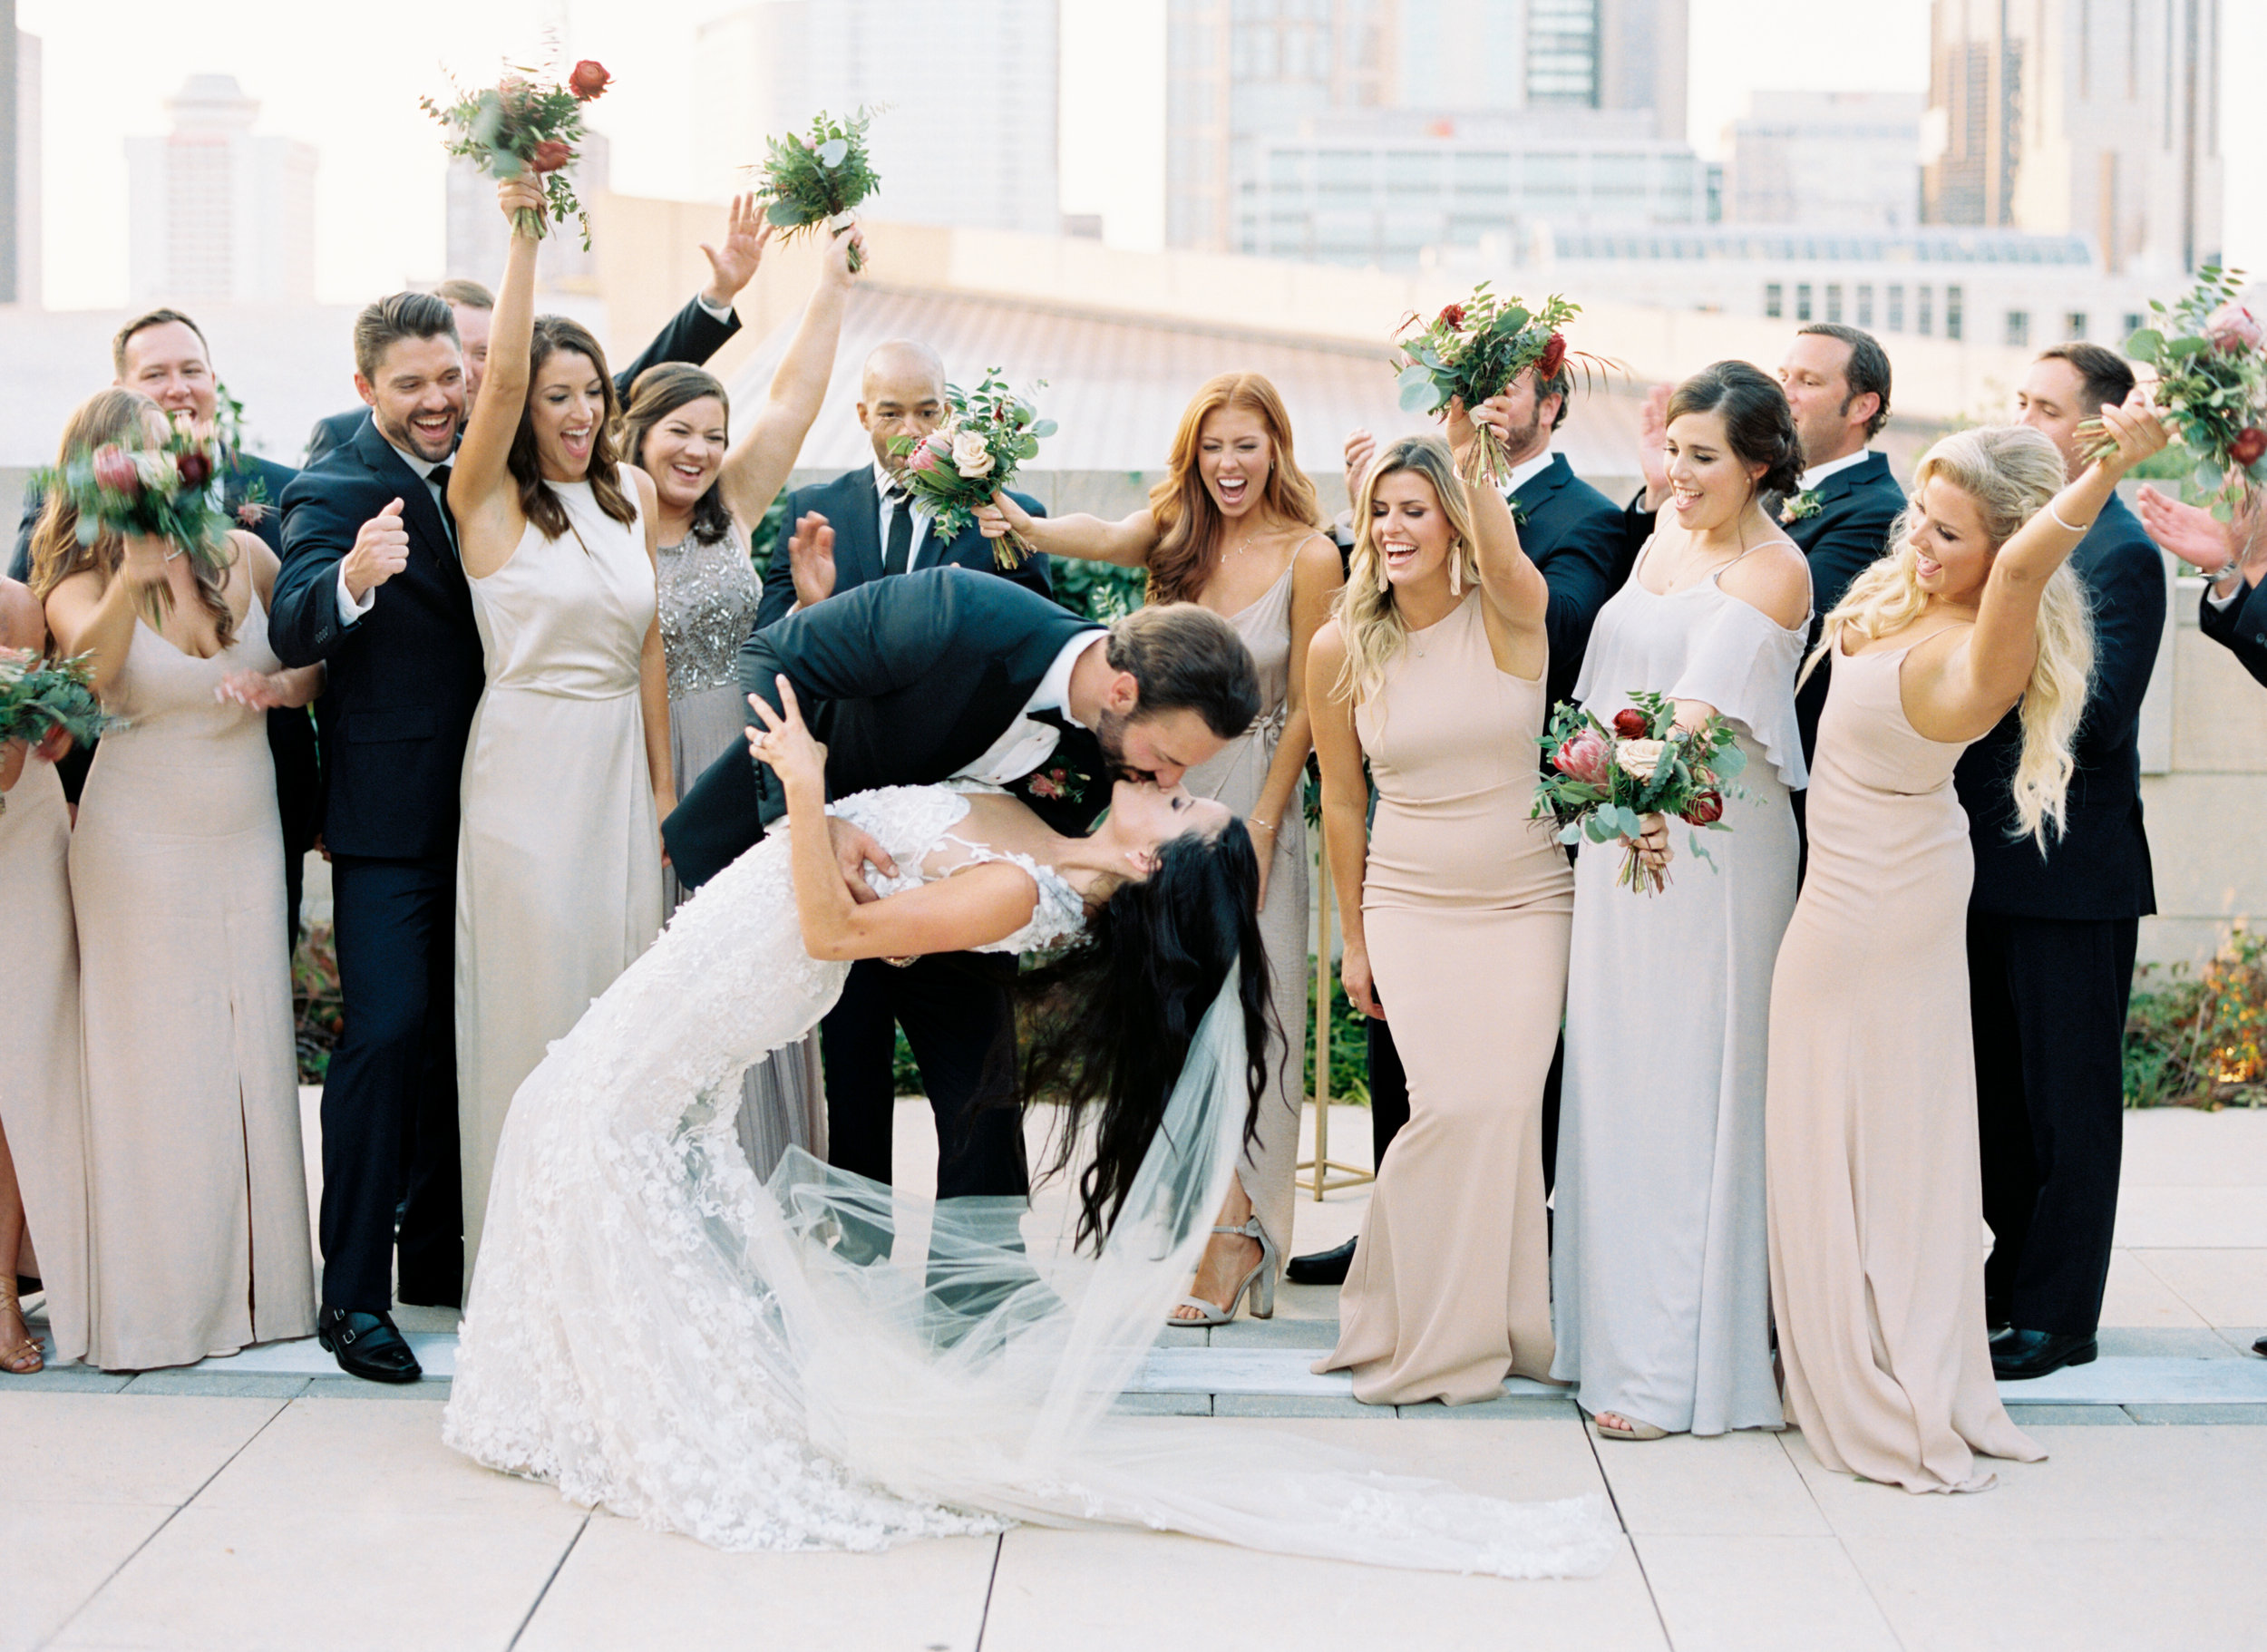 Country Music Hall of Fame wedding with blush and marsala floral design